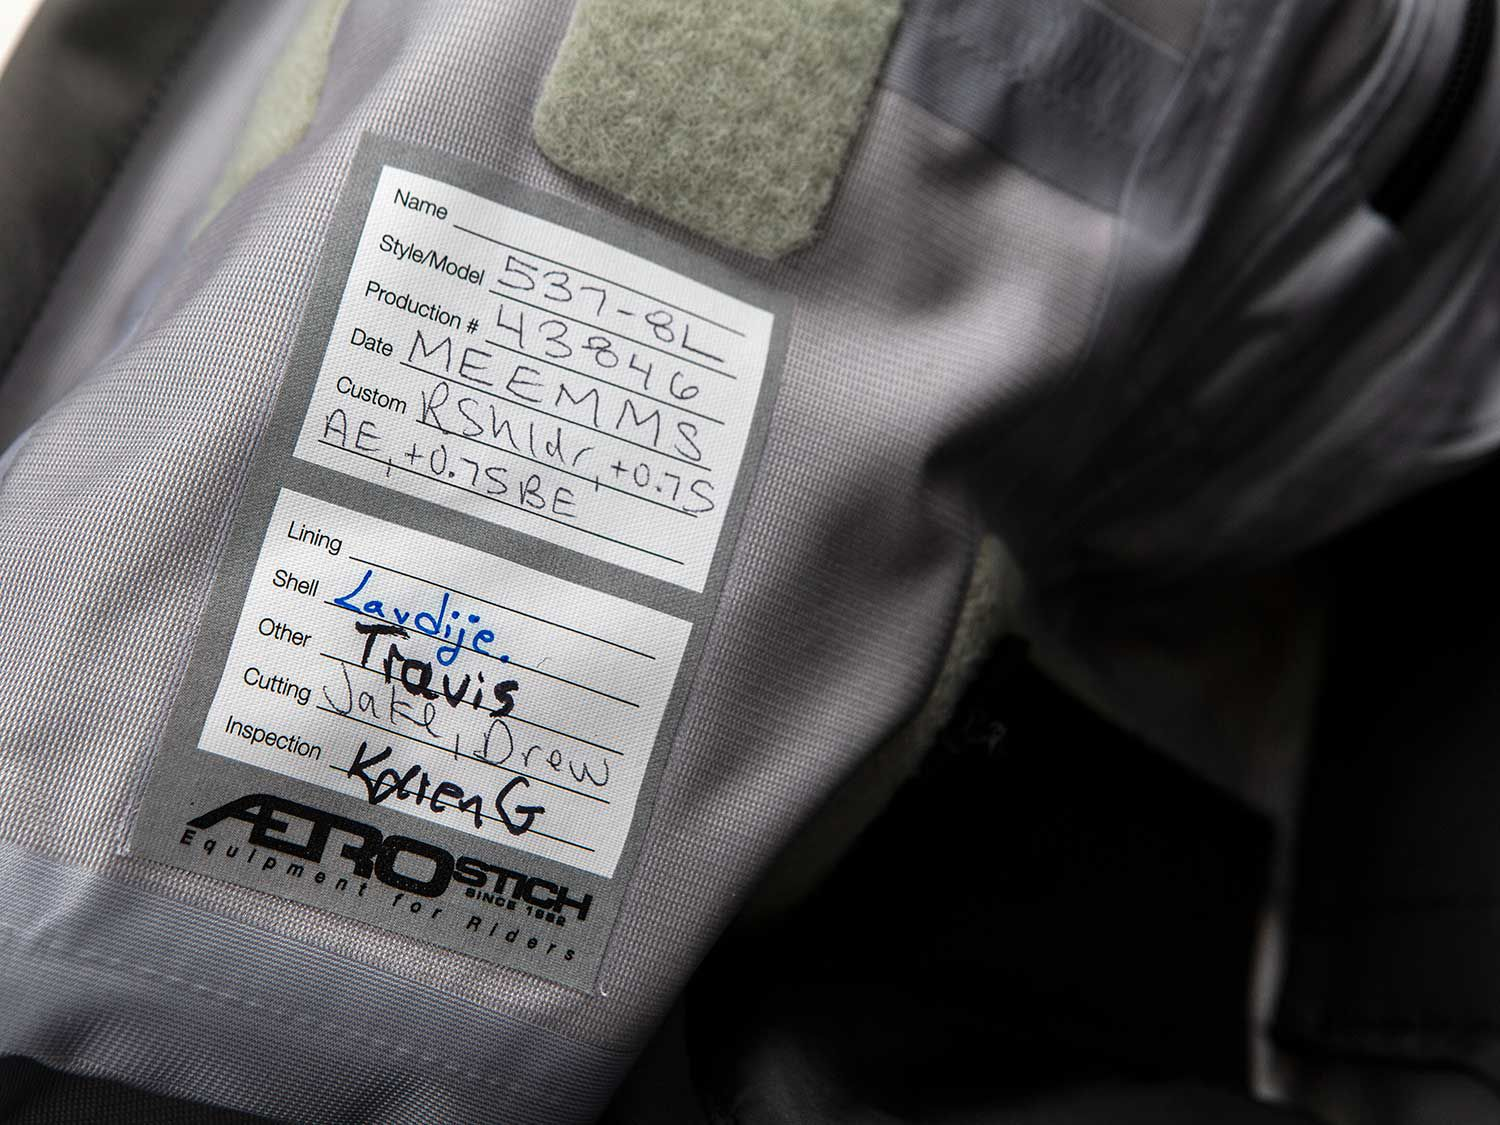 It takes a team to sew, seal, and test. An interior label is even signed by the men and women who stitched that specific suit here in the United States. Aerostich proudly sells direct to consumers, always has and always will.